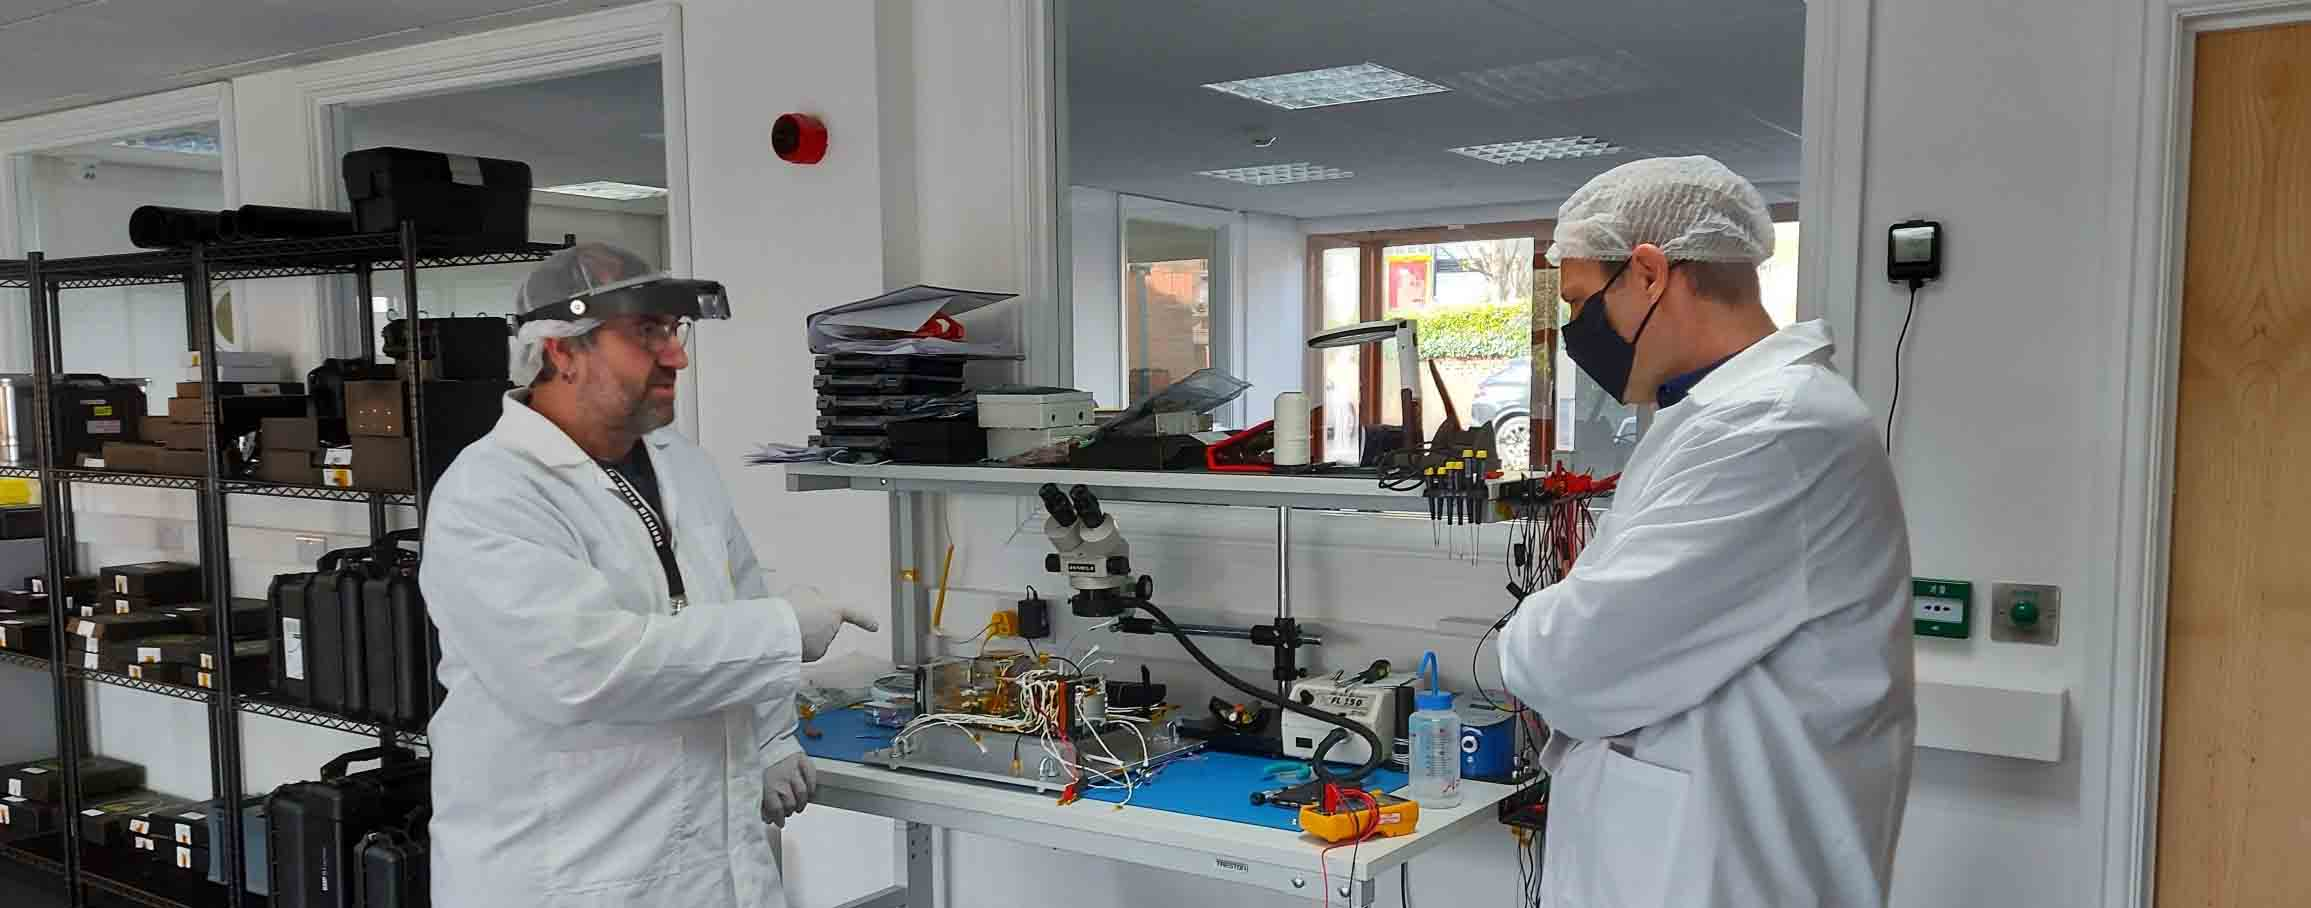 In-Space Missions Cleanroom - designing, building and operating bespoke physical and digital customer missions from Alton, Hampshire